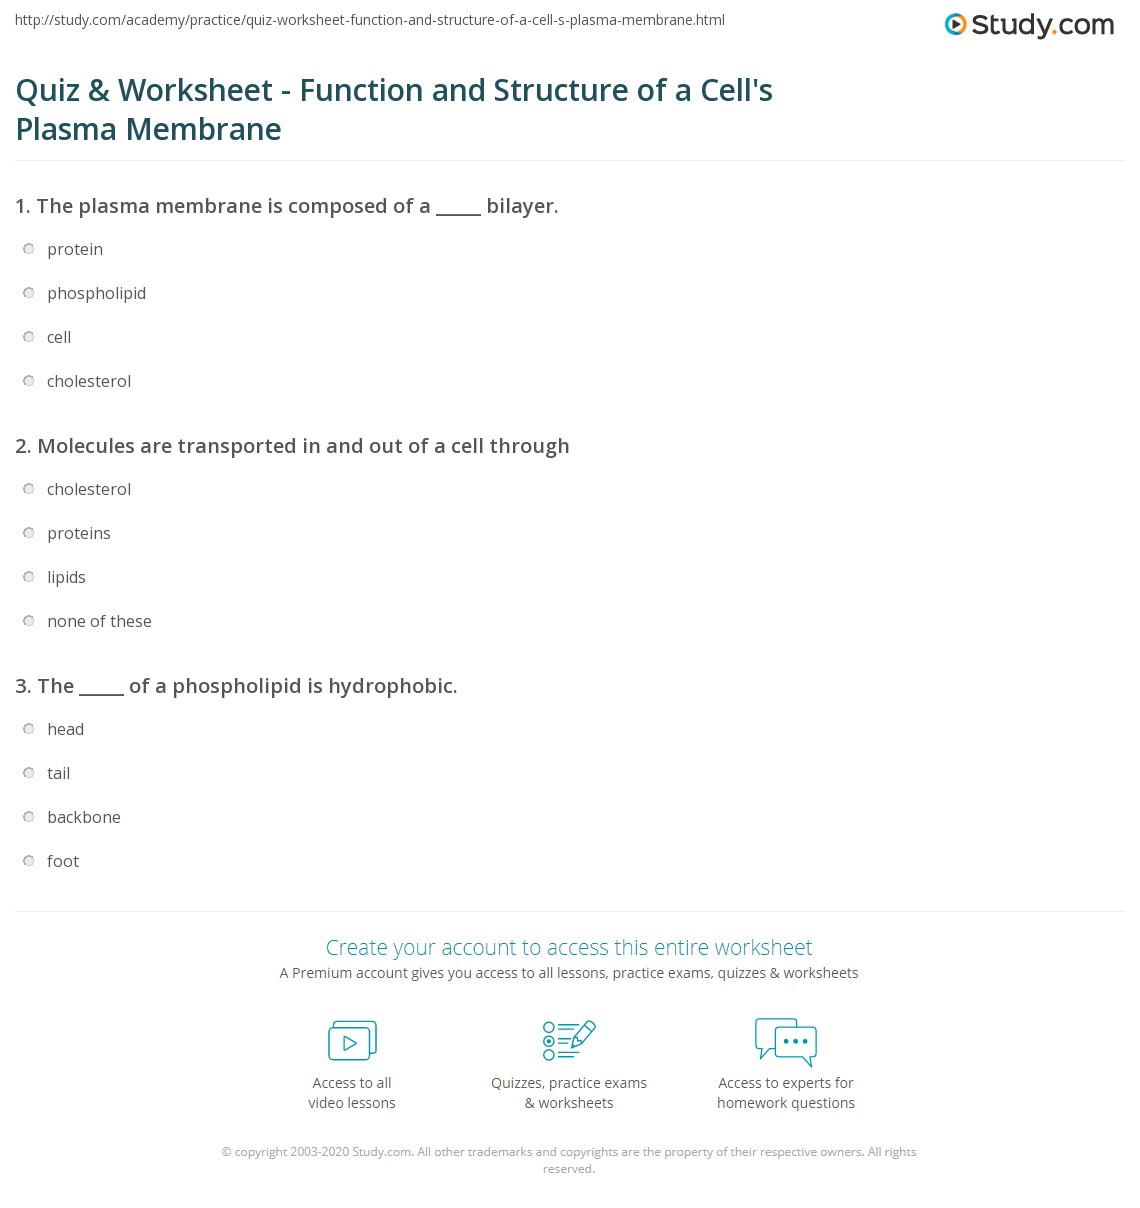 Quiz Worksheet Function And Structure Of A Cells Plasma